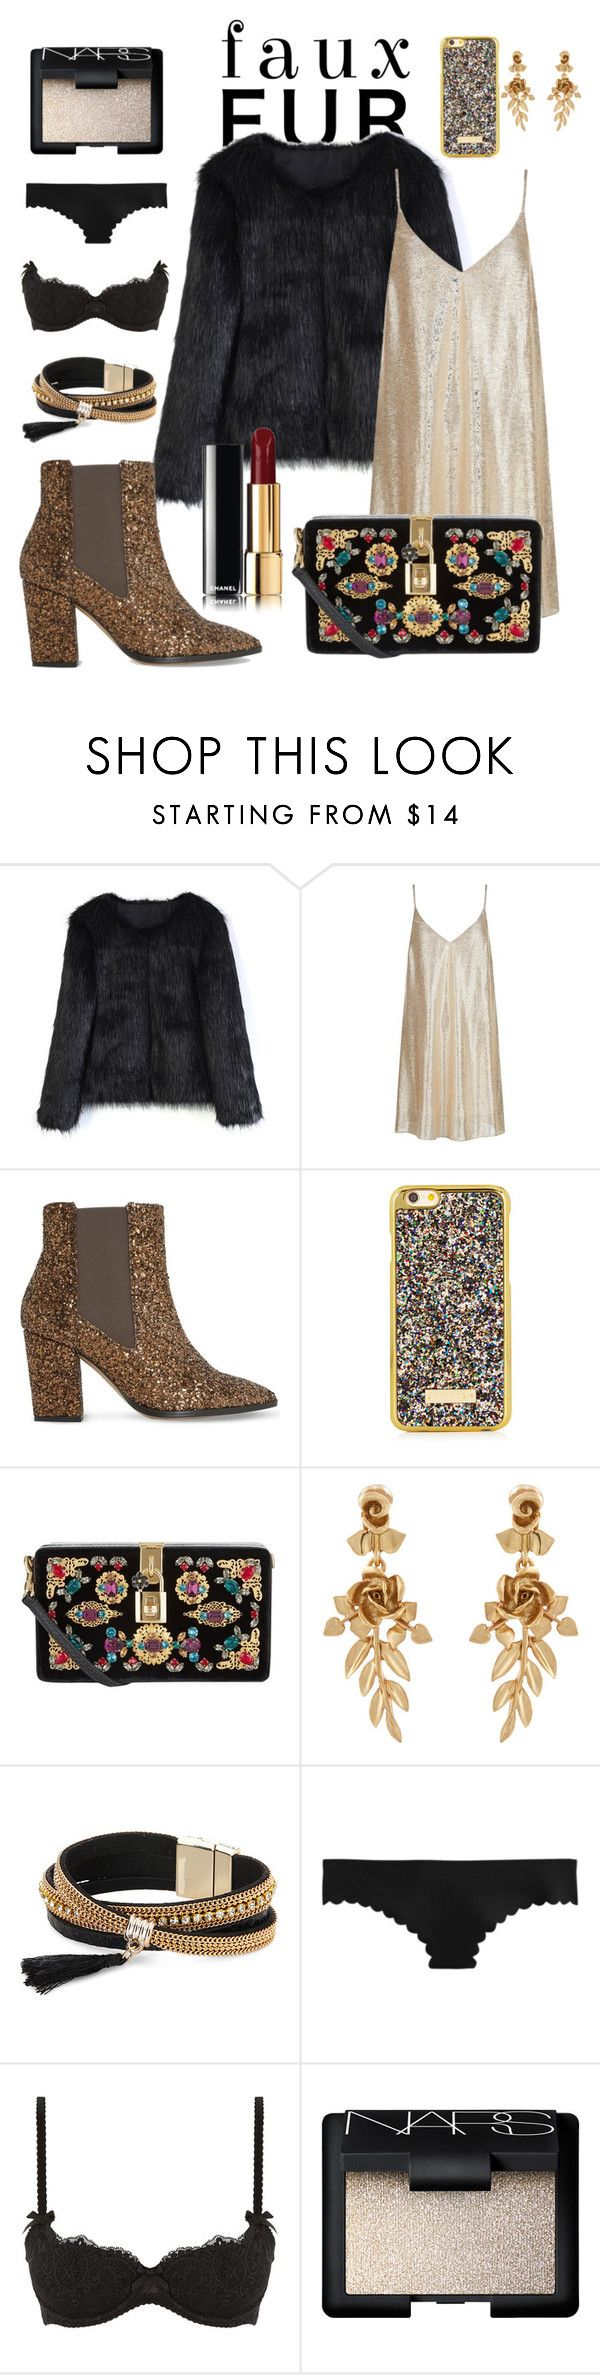 """Faux fur 2"" by pcayetan ❤ liked on Polyvore featuring Chicwish, New Look, Dune, Dolce&Gabbana, Oscar de la Renta, Simons, J.Crew, L'Agent By Agent Provocateur and NARS Cosmetics"